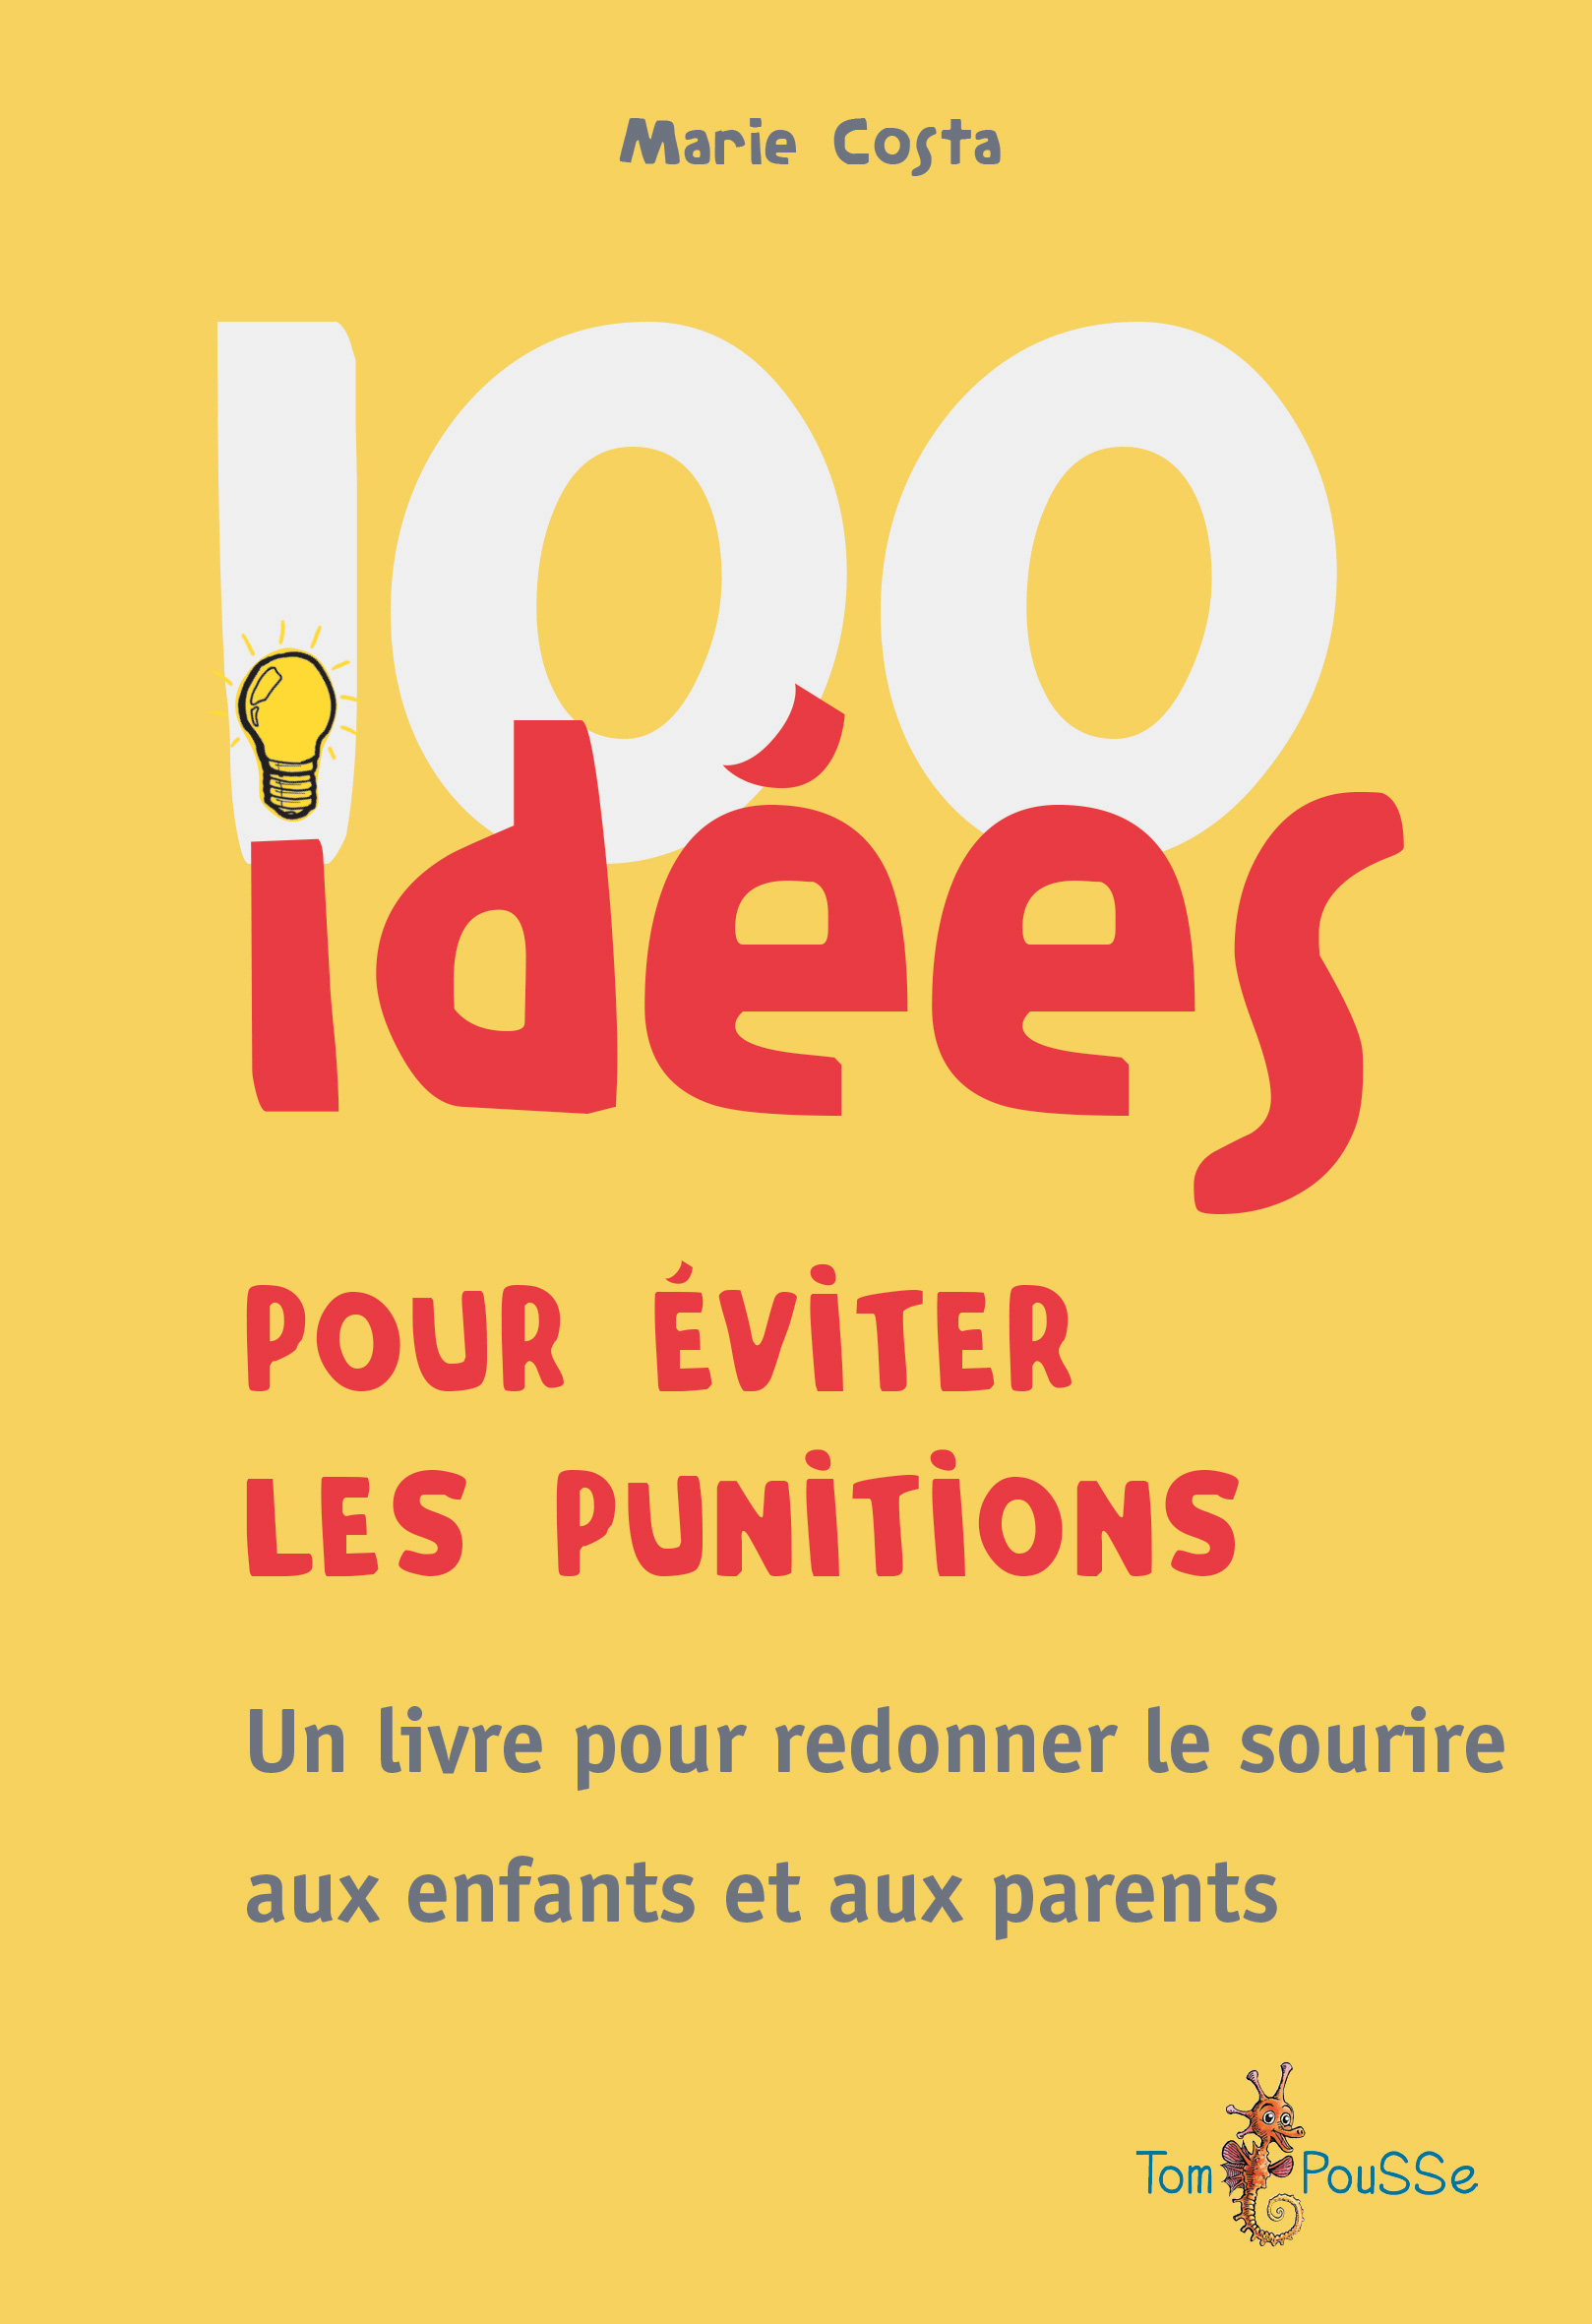 100IdeesEviterPunitions